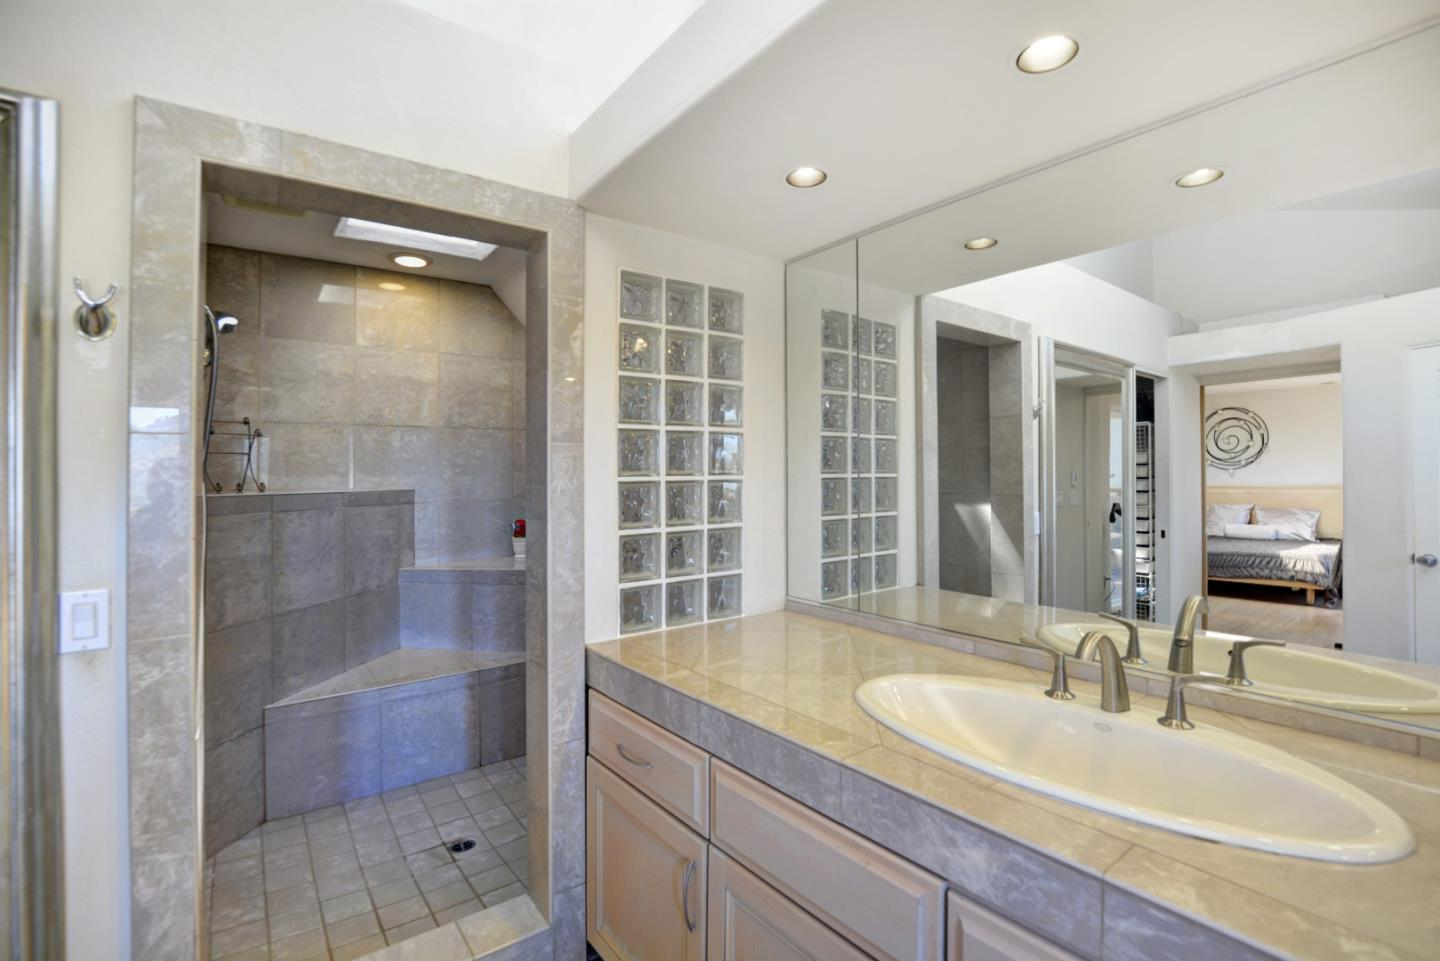 Additional photo for property listing at 5 Southview Ln  CARMEL VALLEY, CALIFORNIA 93924